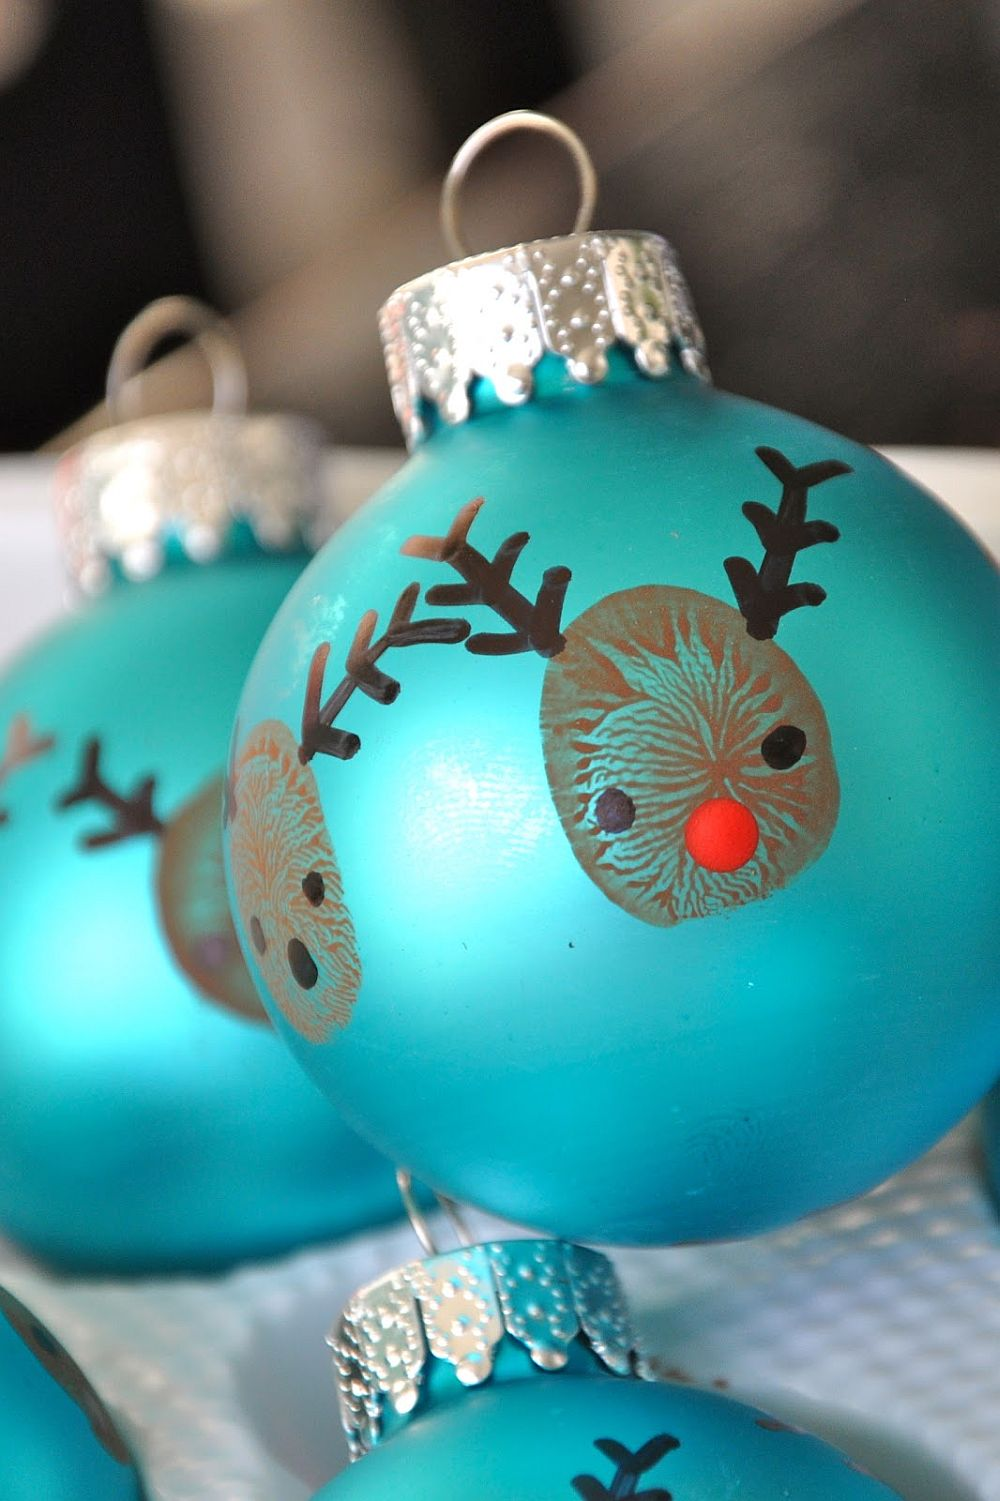 Colorful and creative Christmas ornaments with reindeer print